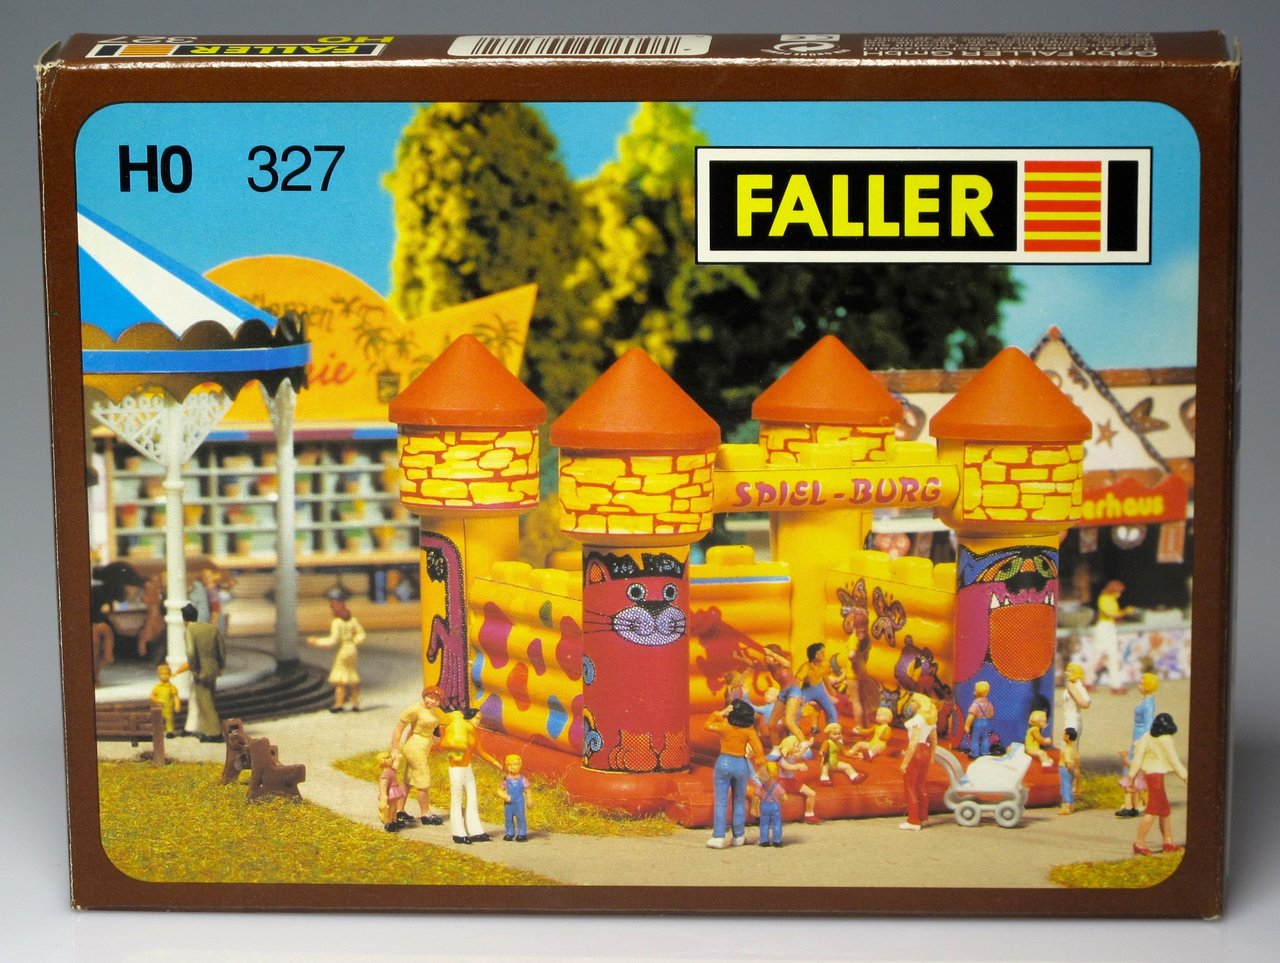 FALLER 327 Bouncy Castle